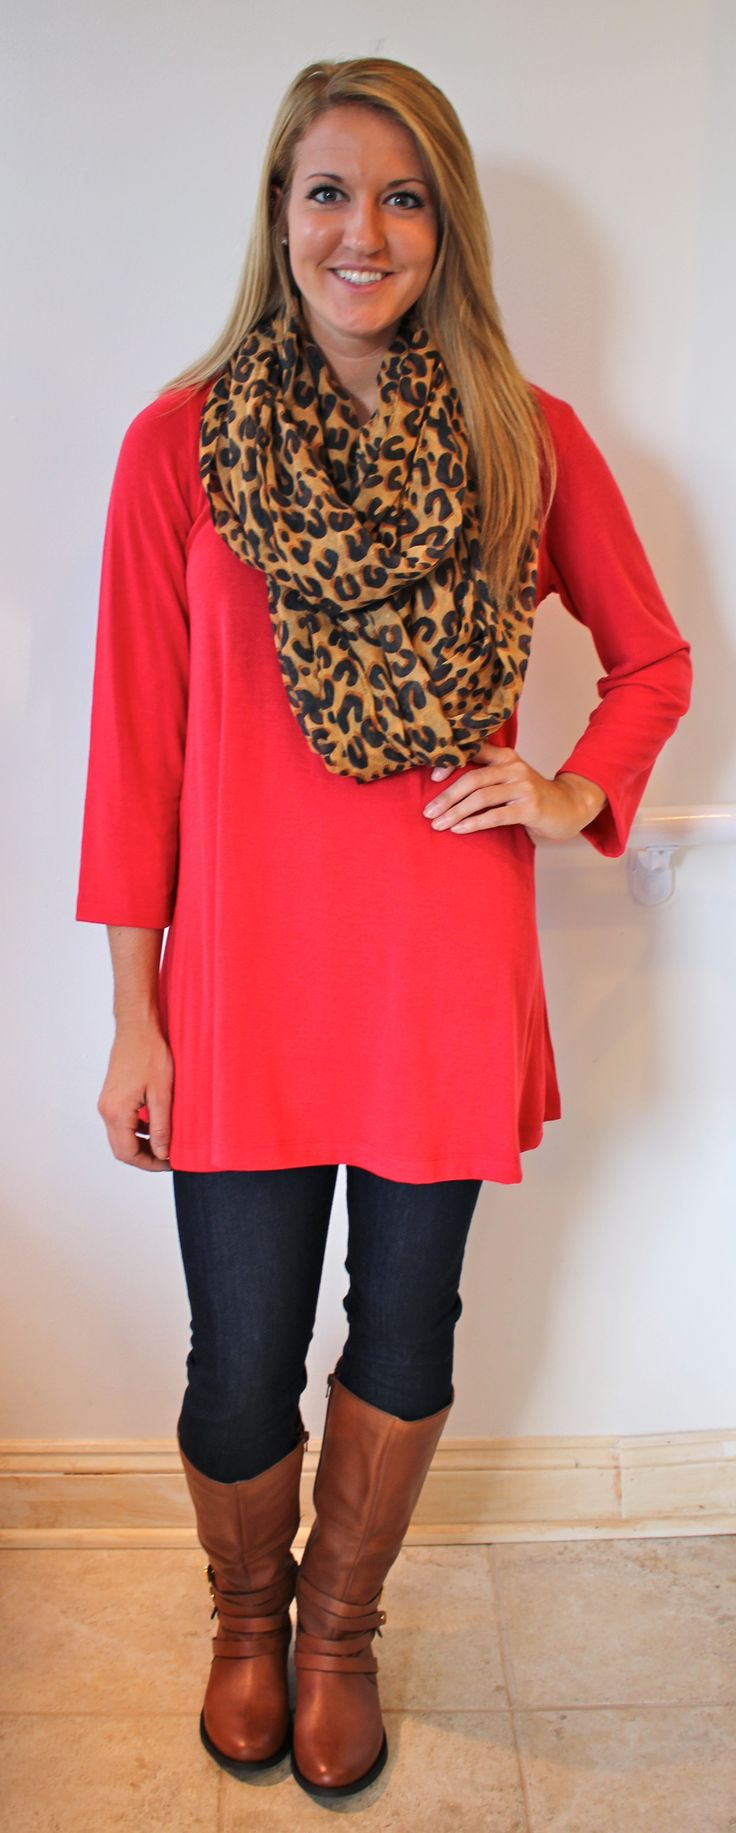 Fall outfits!! Great red tunic with leopard print scarf and riding boots!!